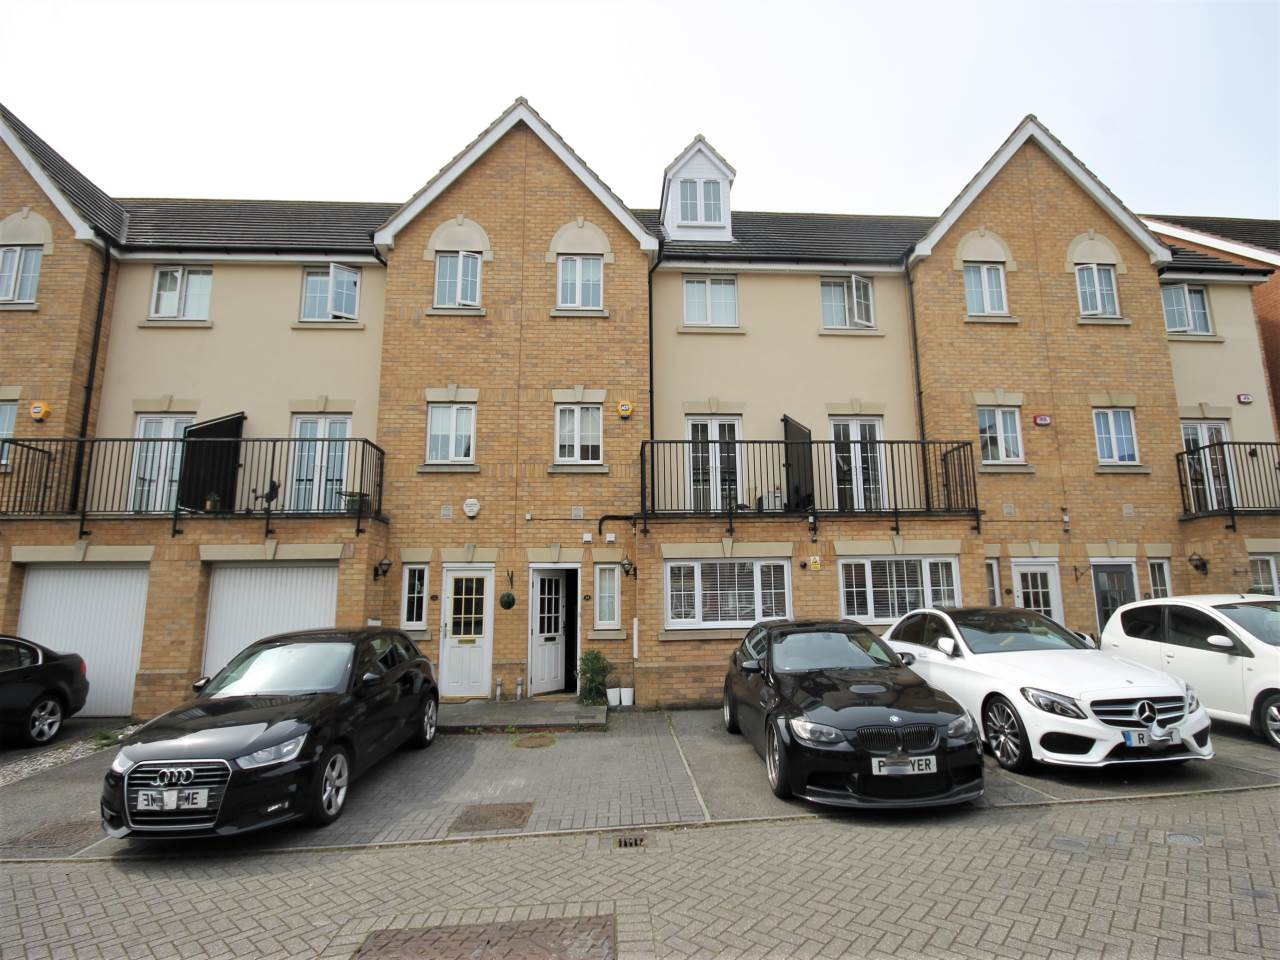 5 bed house to rent in Ilford, IG6